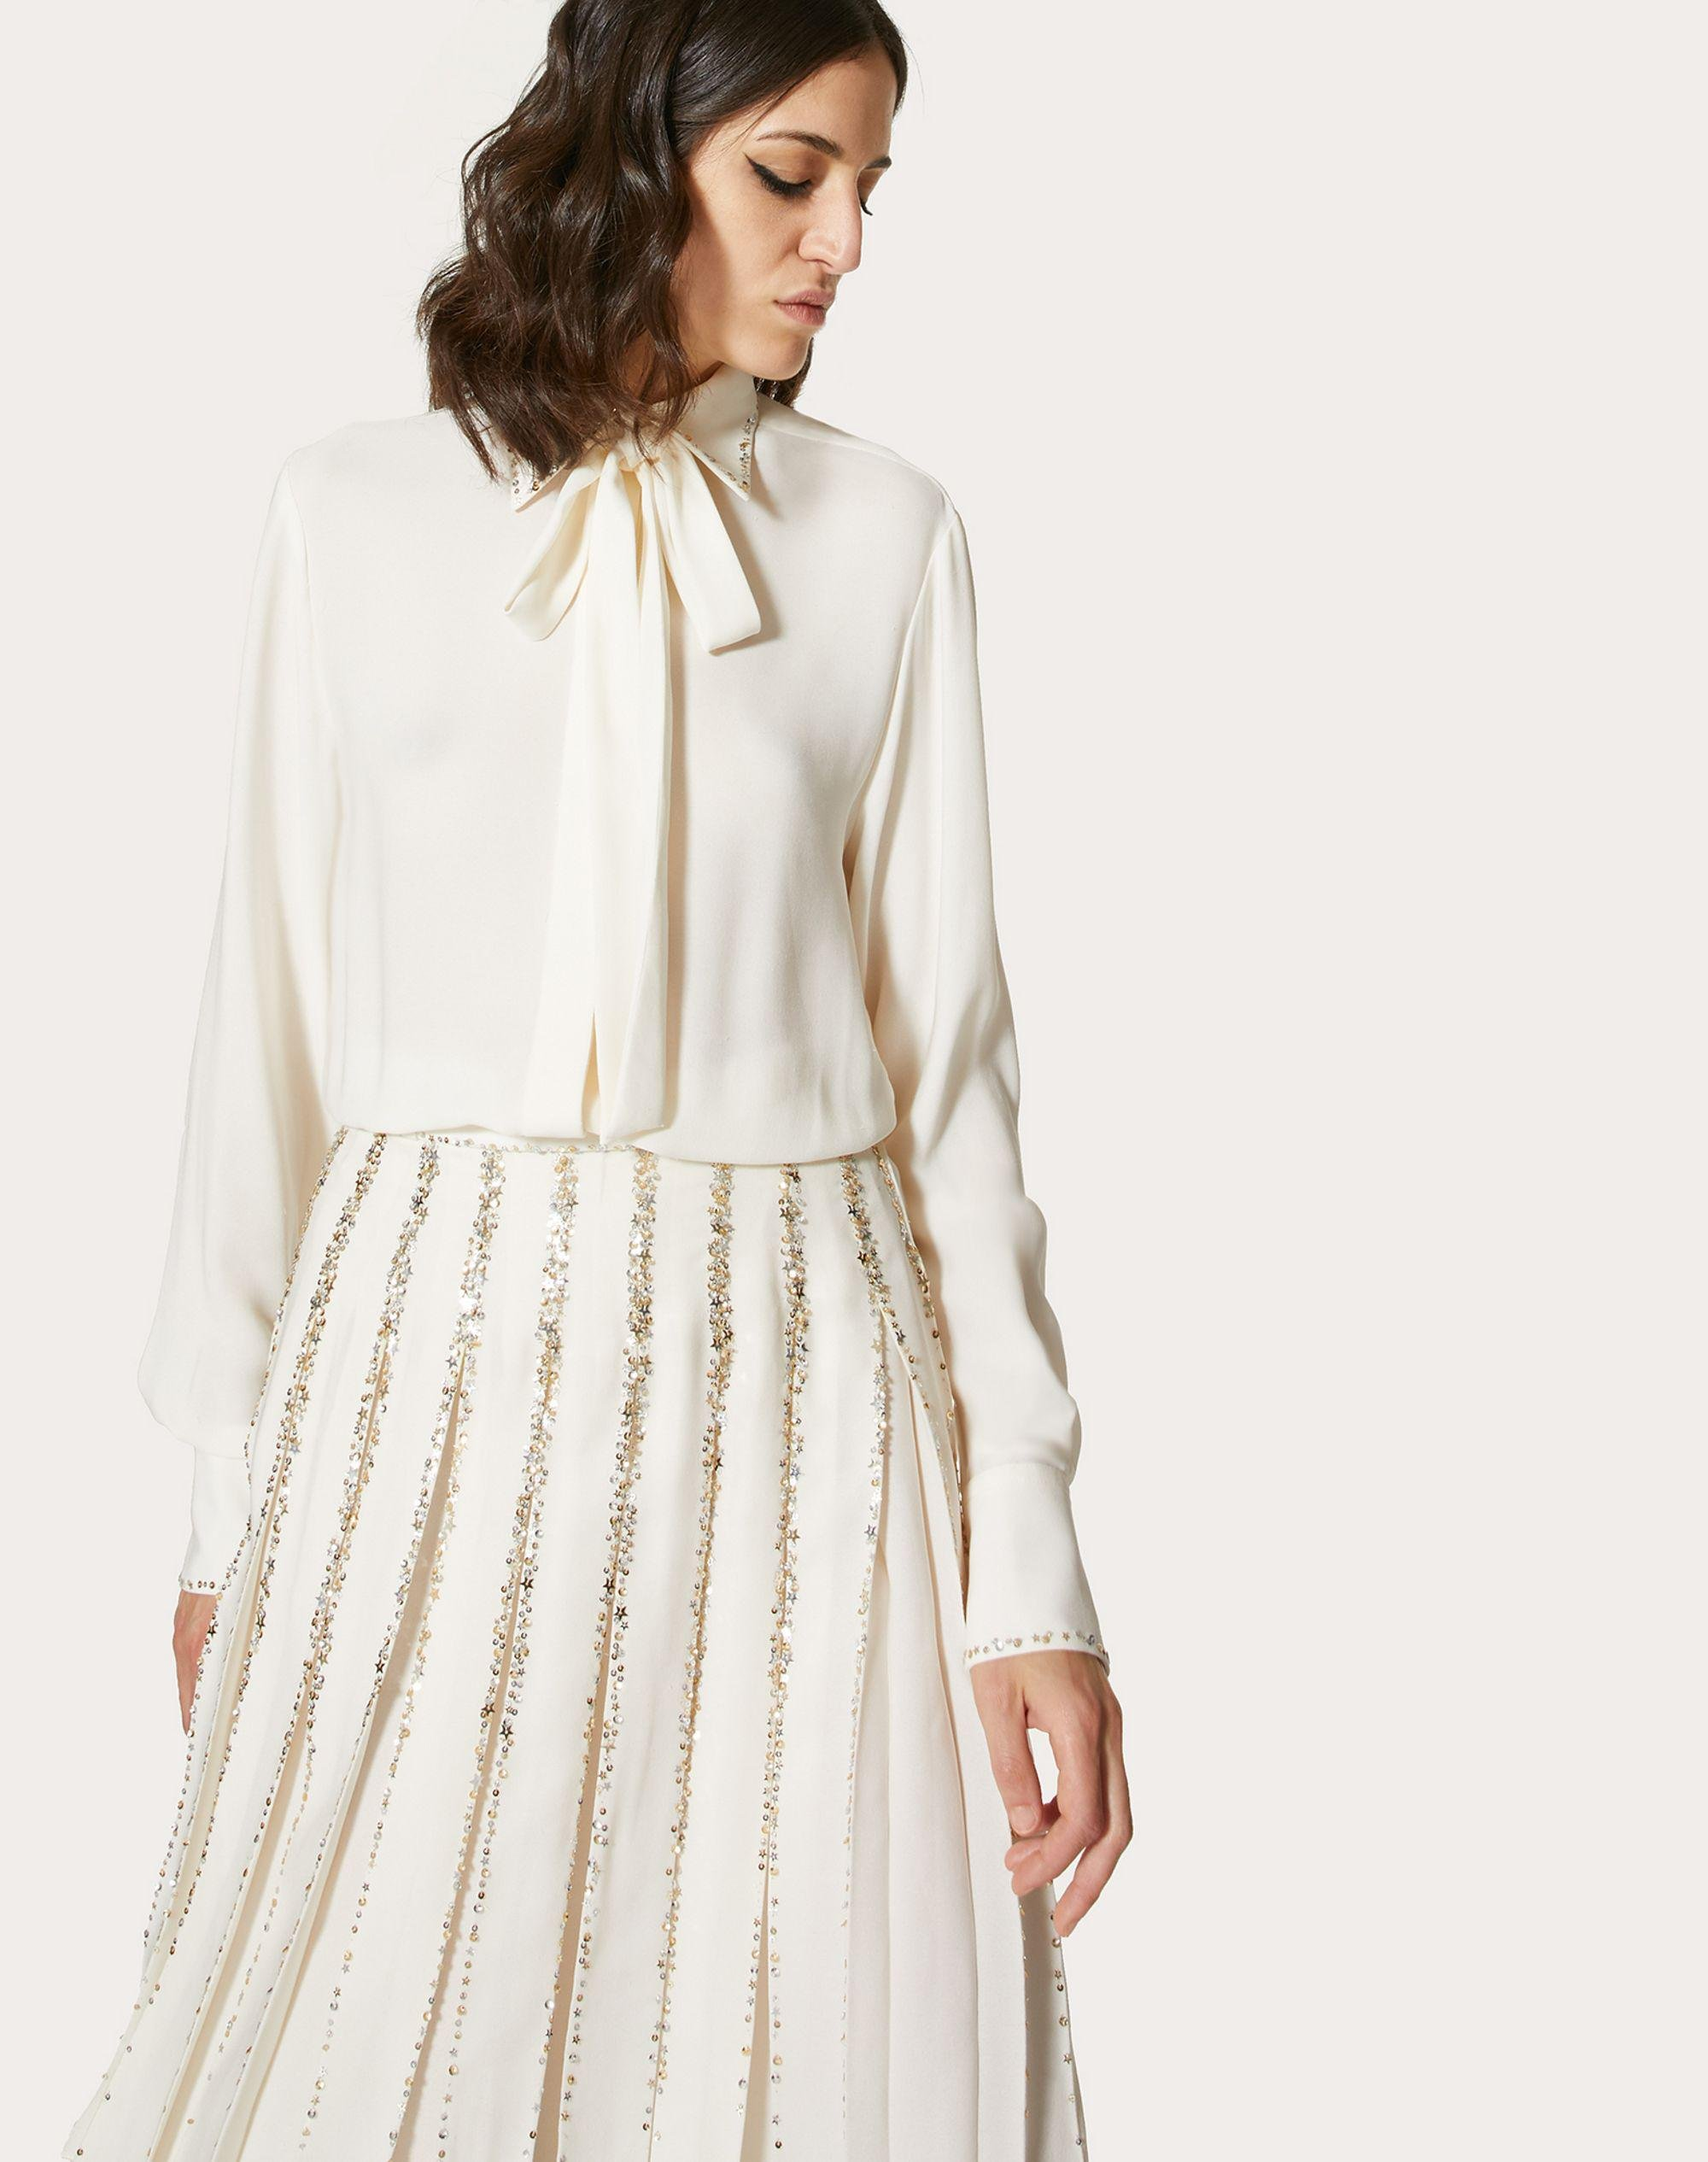 EMBROIDERED GEORGETTE DRESS 3